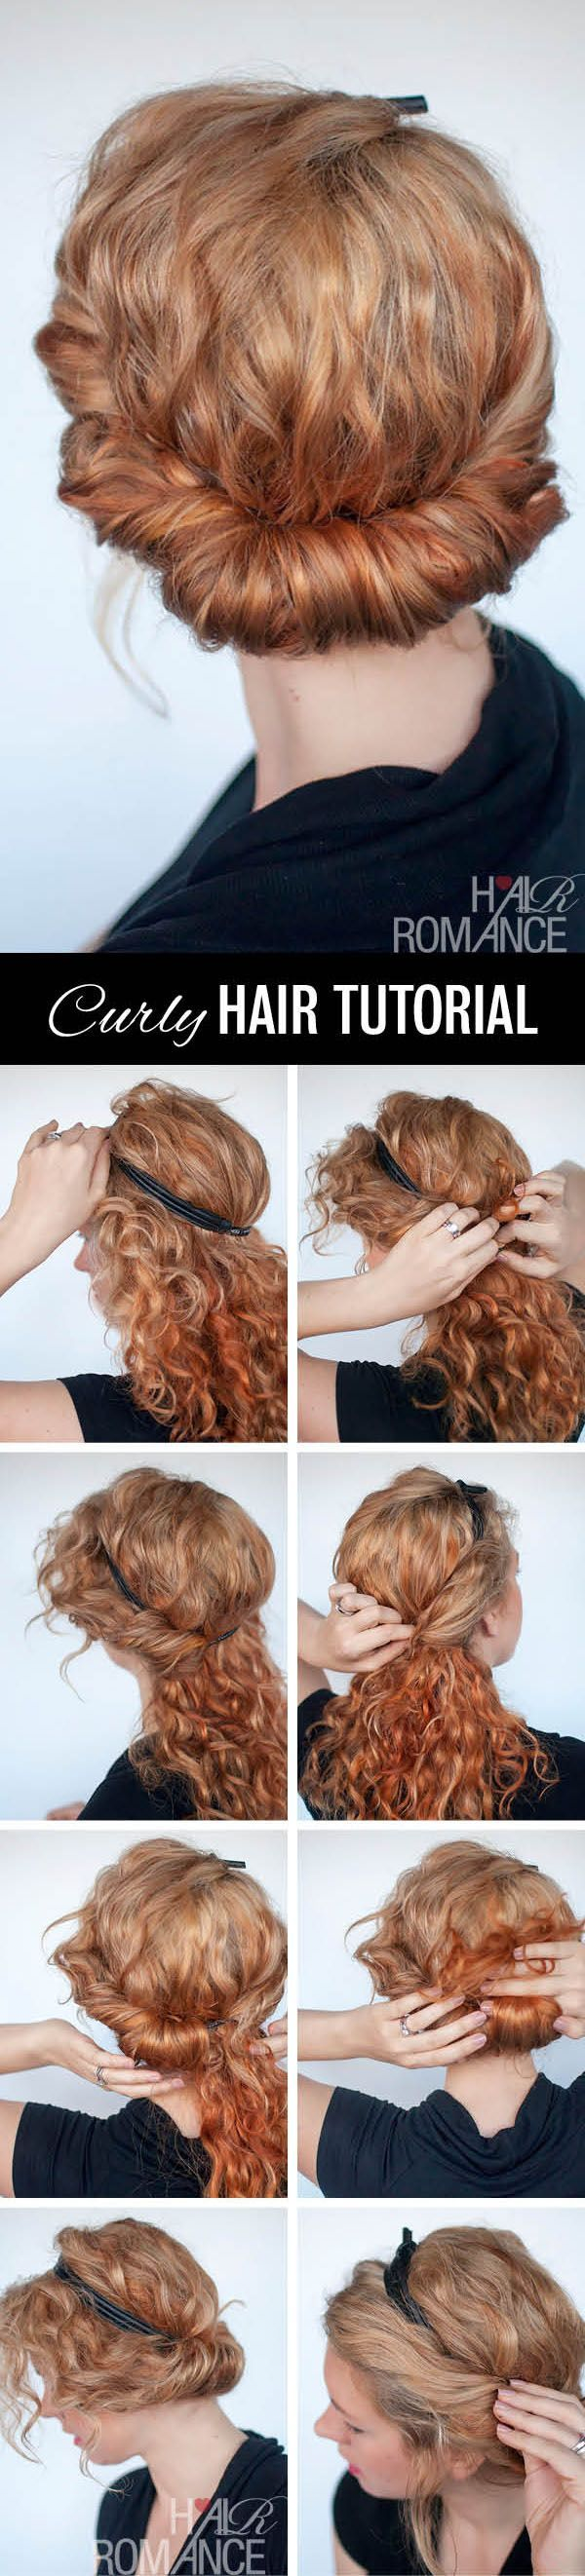 Hair Romance - curly hairstyle tutorial - rolled headband upstyle